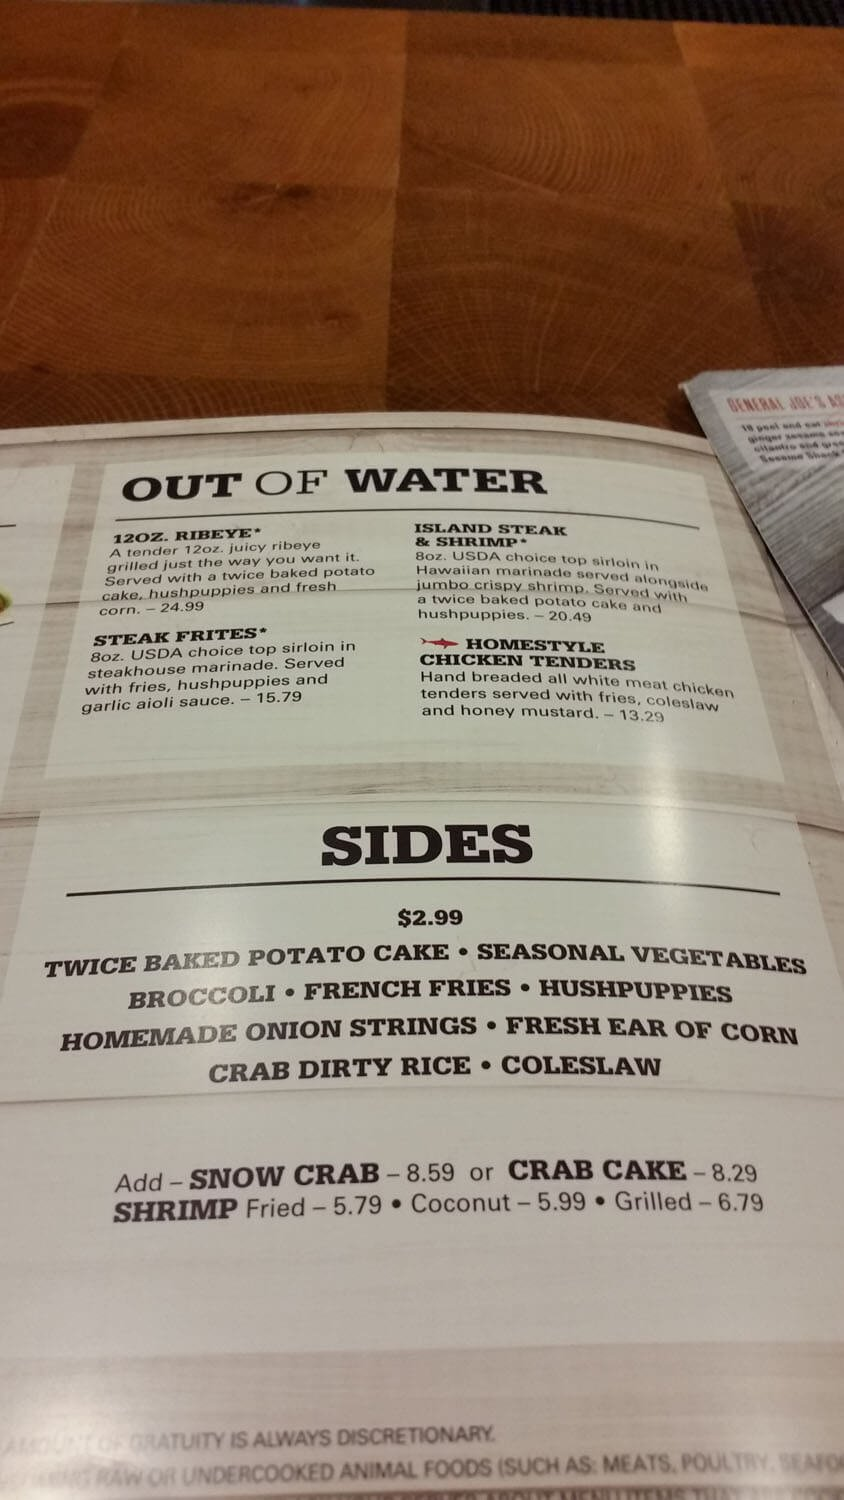 Joe's Crab Shack Menu – 24